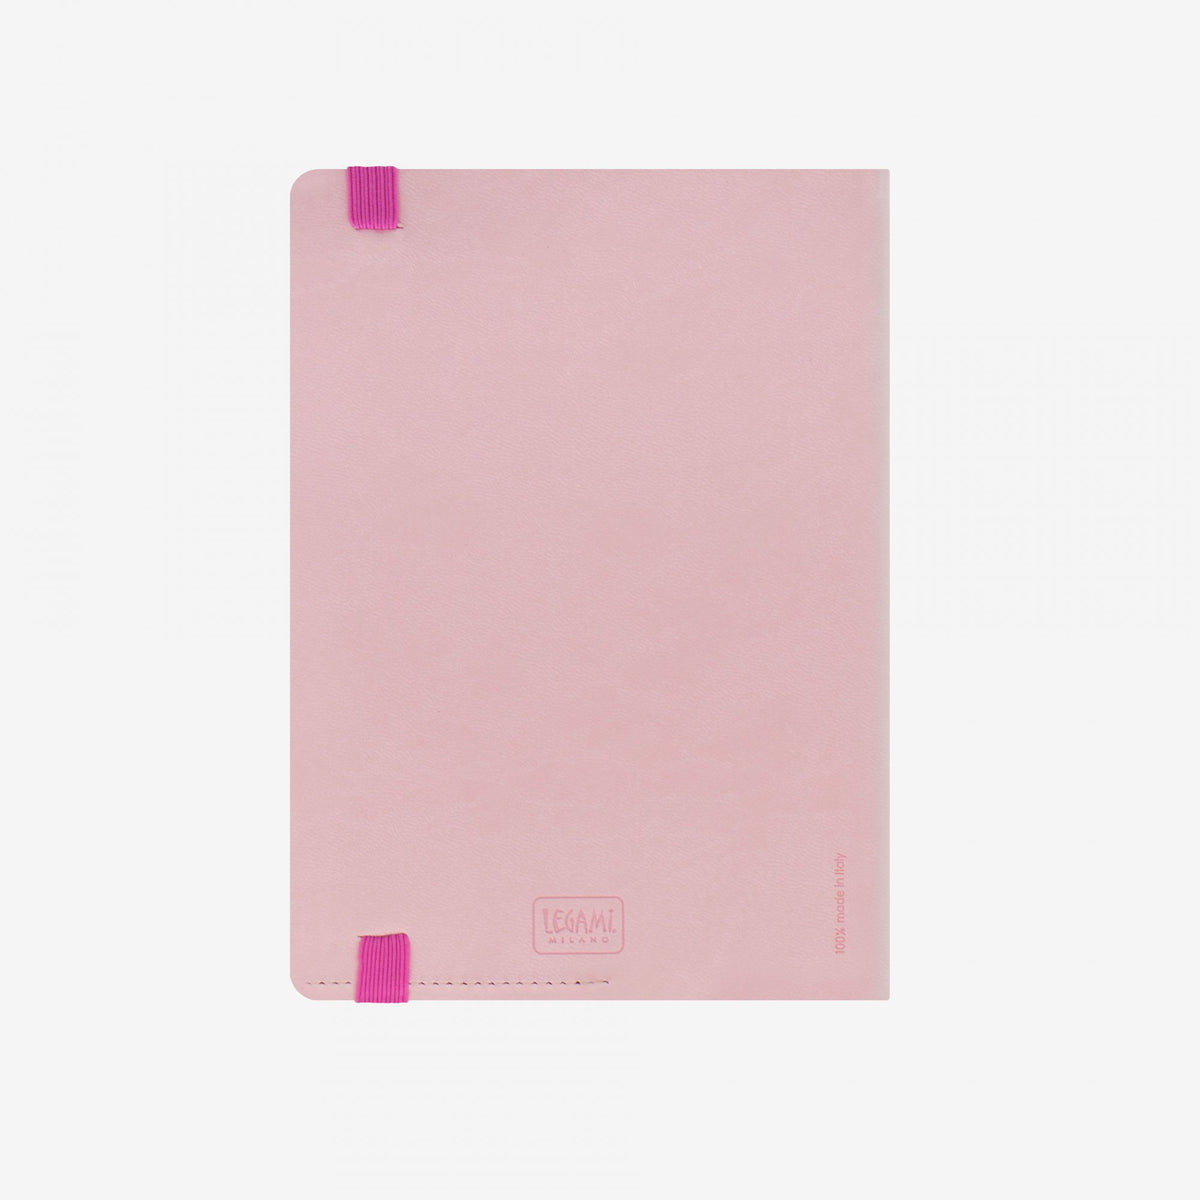 My notebook pink back legami gifts gift ideas gifting made simple